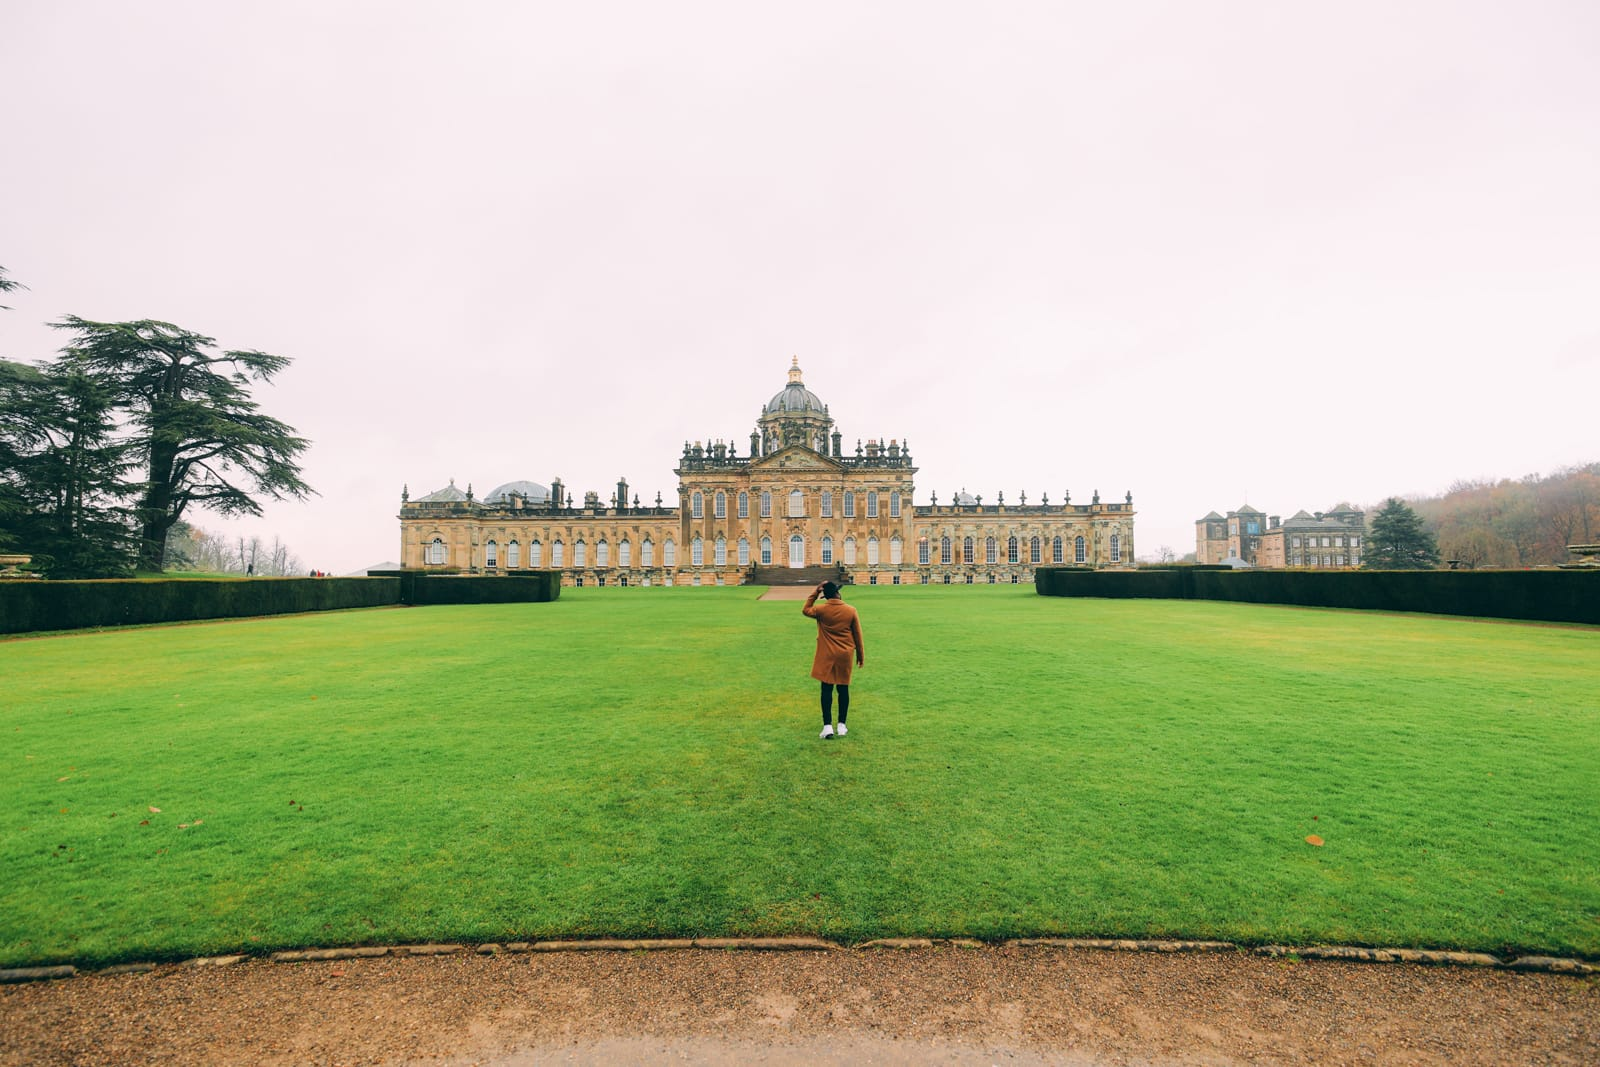 Castle Howard - An English Castle You Absolutely Have To Visit! (7)